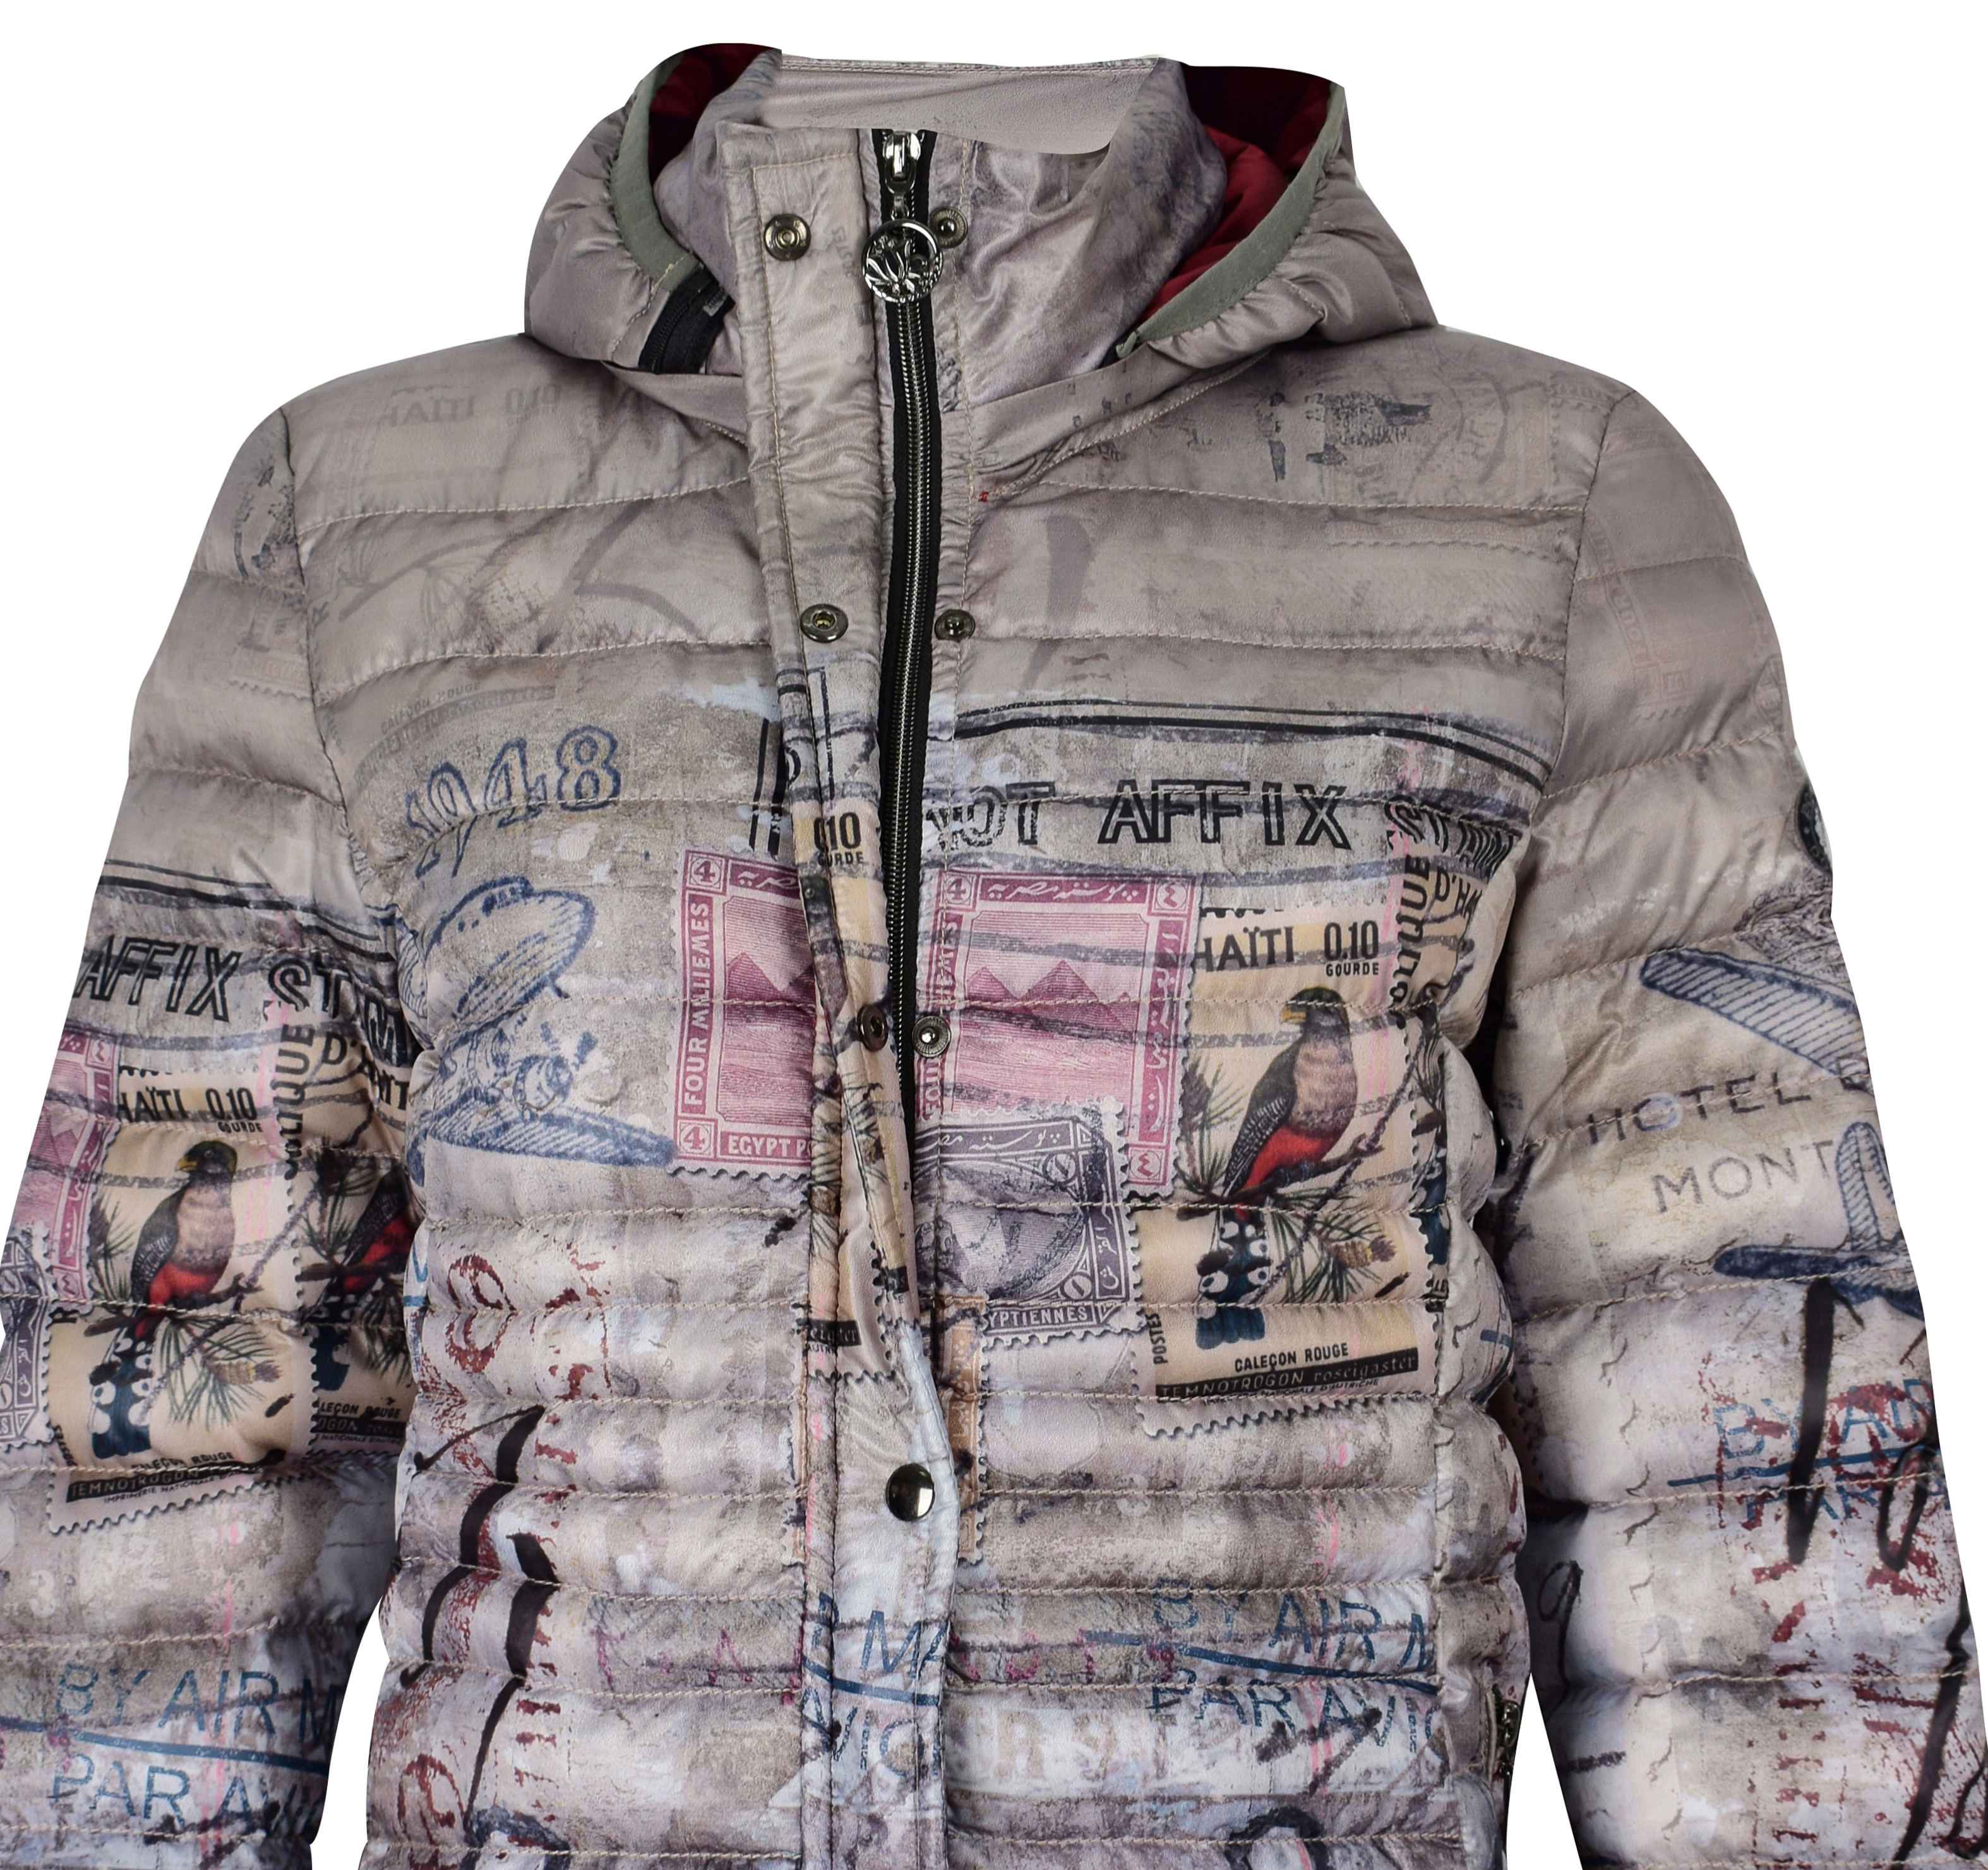 Simply Art Dolcezza: Do Not Affix Stamp Graffiti Abstract Art Puffer Coat SOLD OUT